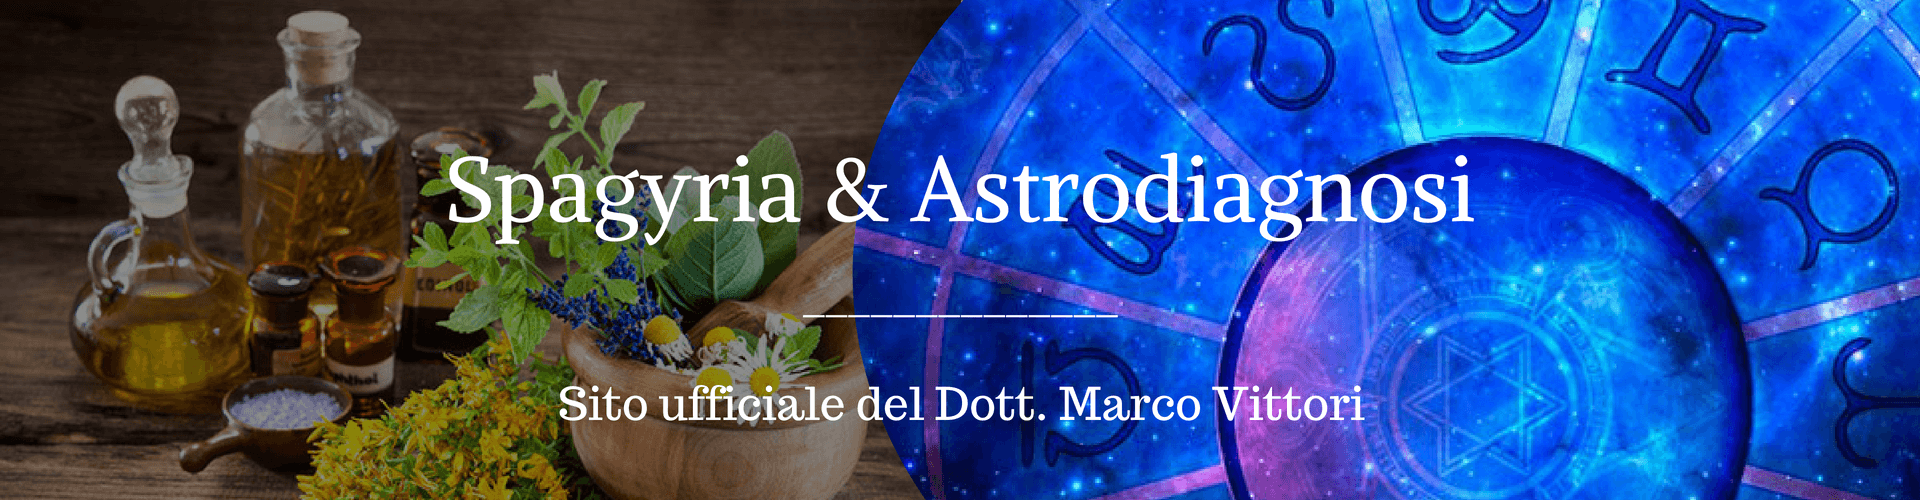 Seminari on line: approfondimento in Astrodiagnosi Spagirica